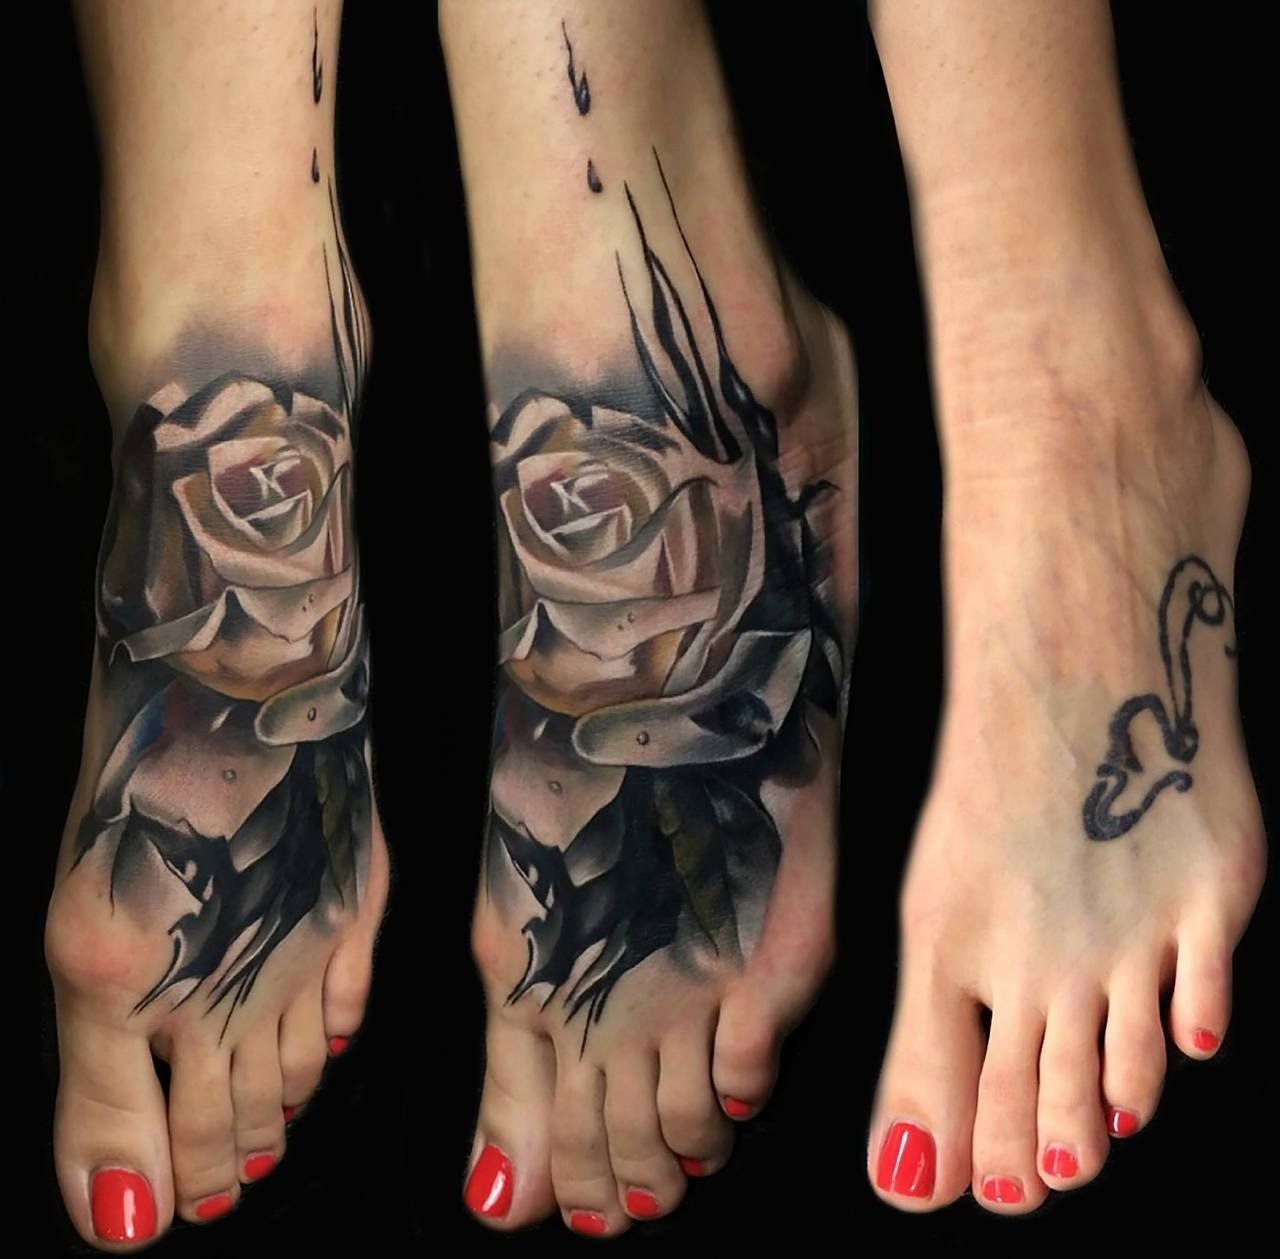 10 Perfect Good Cover Up Tattoo Ideas coverup tattoo foot rose cover up tattoo design best tattoo 2